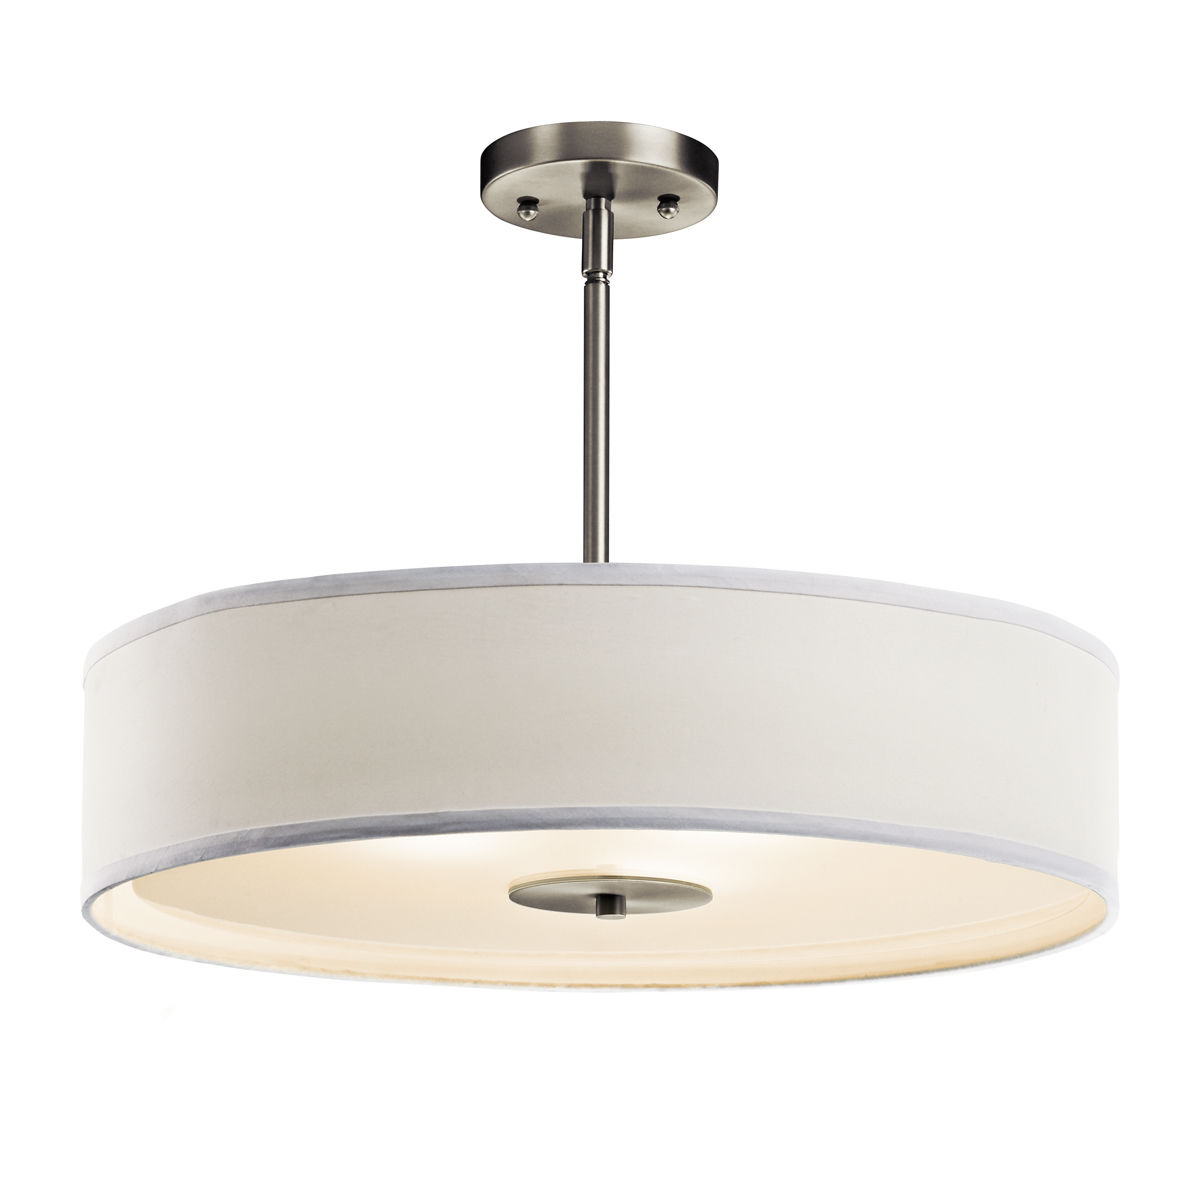 Kichler 42121ni brushed nickel 3 light 20 wide convertible kichler 42121ni brushed nickel 3 light 20 wide convertible pendant semi flush ceiling fixture with drum fabric shade lightingdirect aloadofball Choice Image